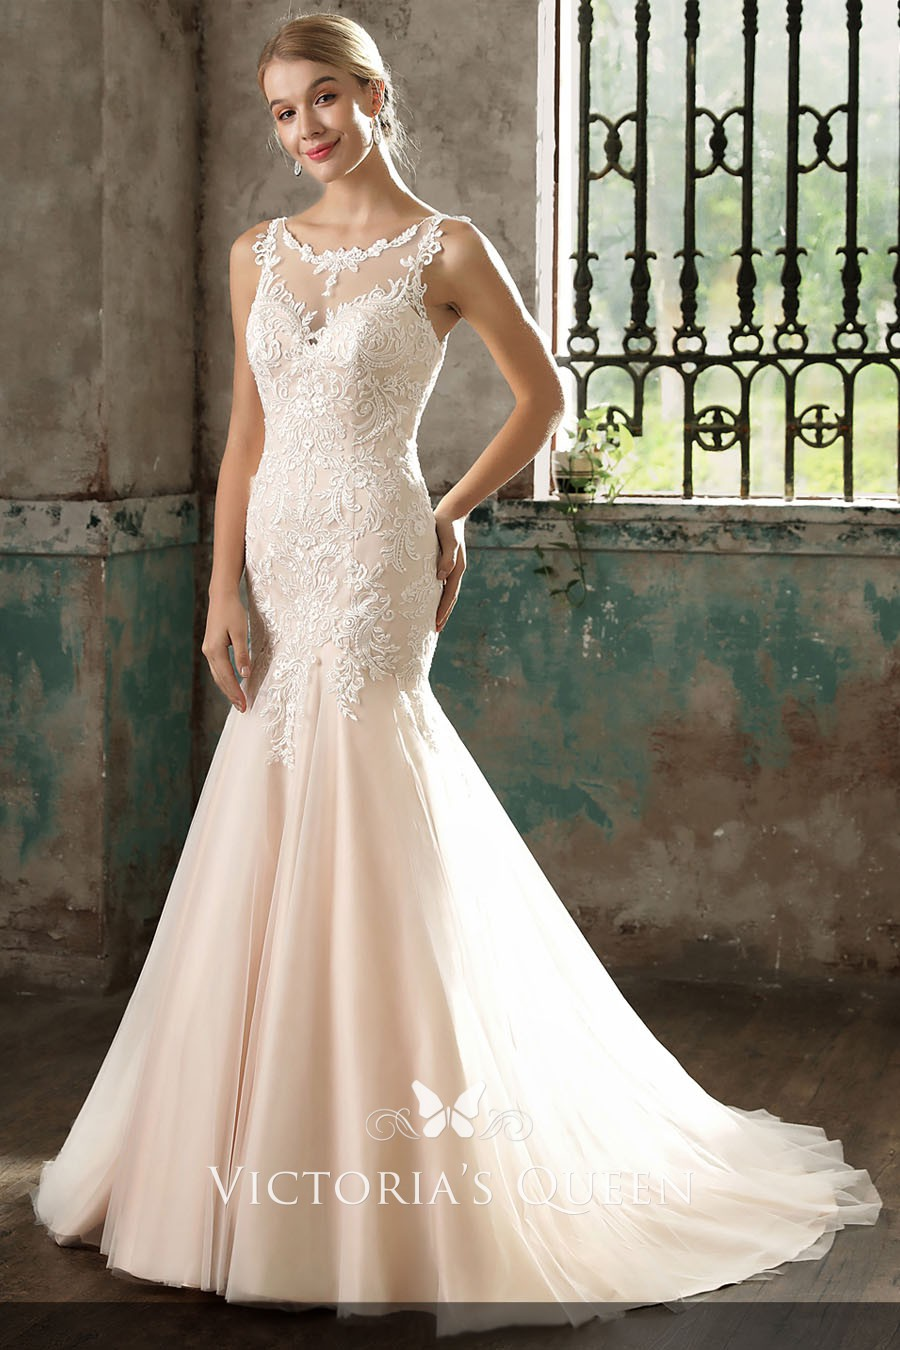 Classic Blush Lace Satin And Tulle Illusion Mermaid Dropped Waist Wedding Dress: Dropped Waist Mermaid Wedding Dresses At Reisefeber.org